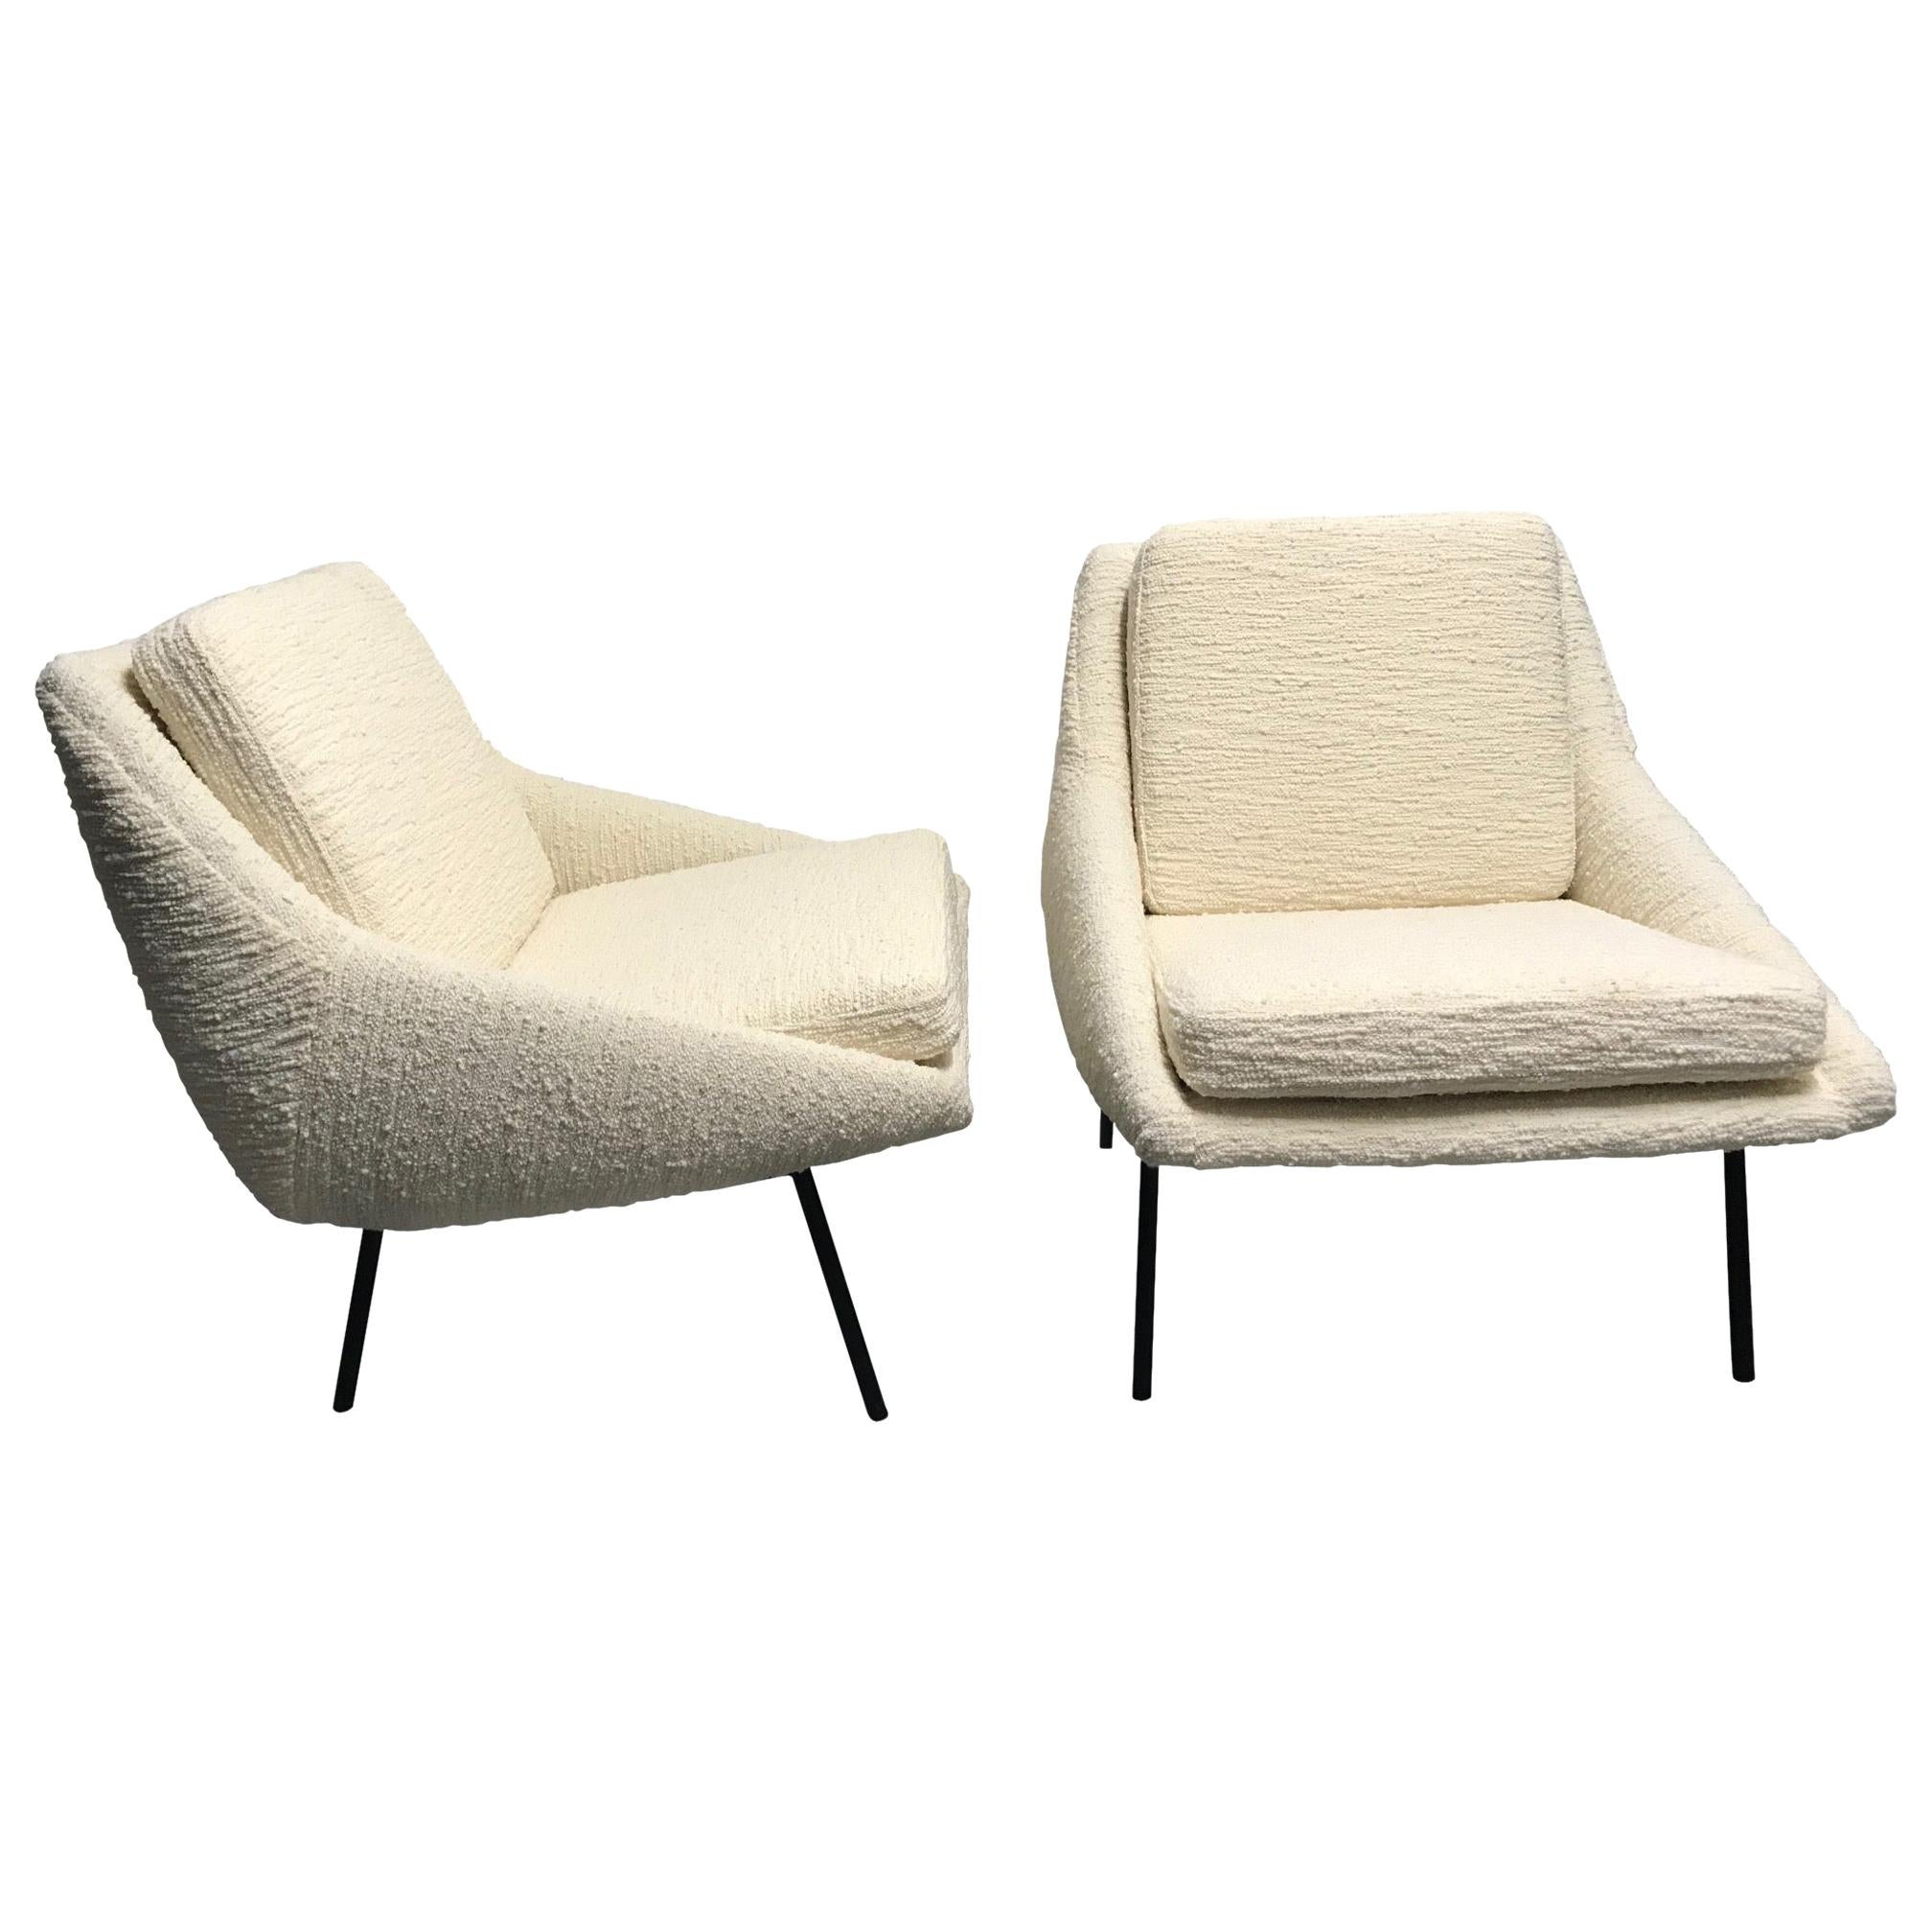 """Joseph-André Motte pair of armchairs """"800"""" for Steiner, France, 1950s"""